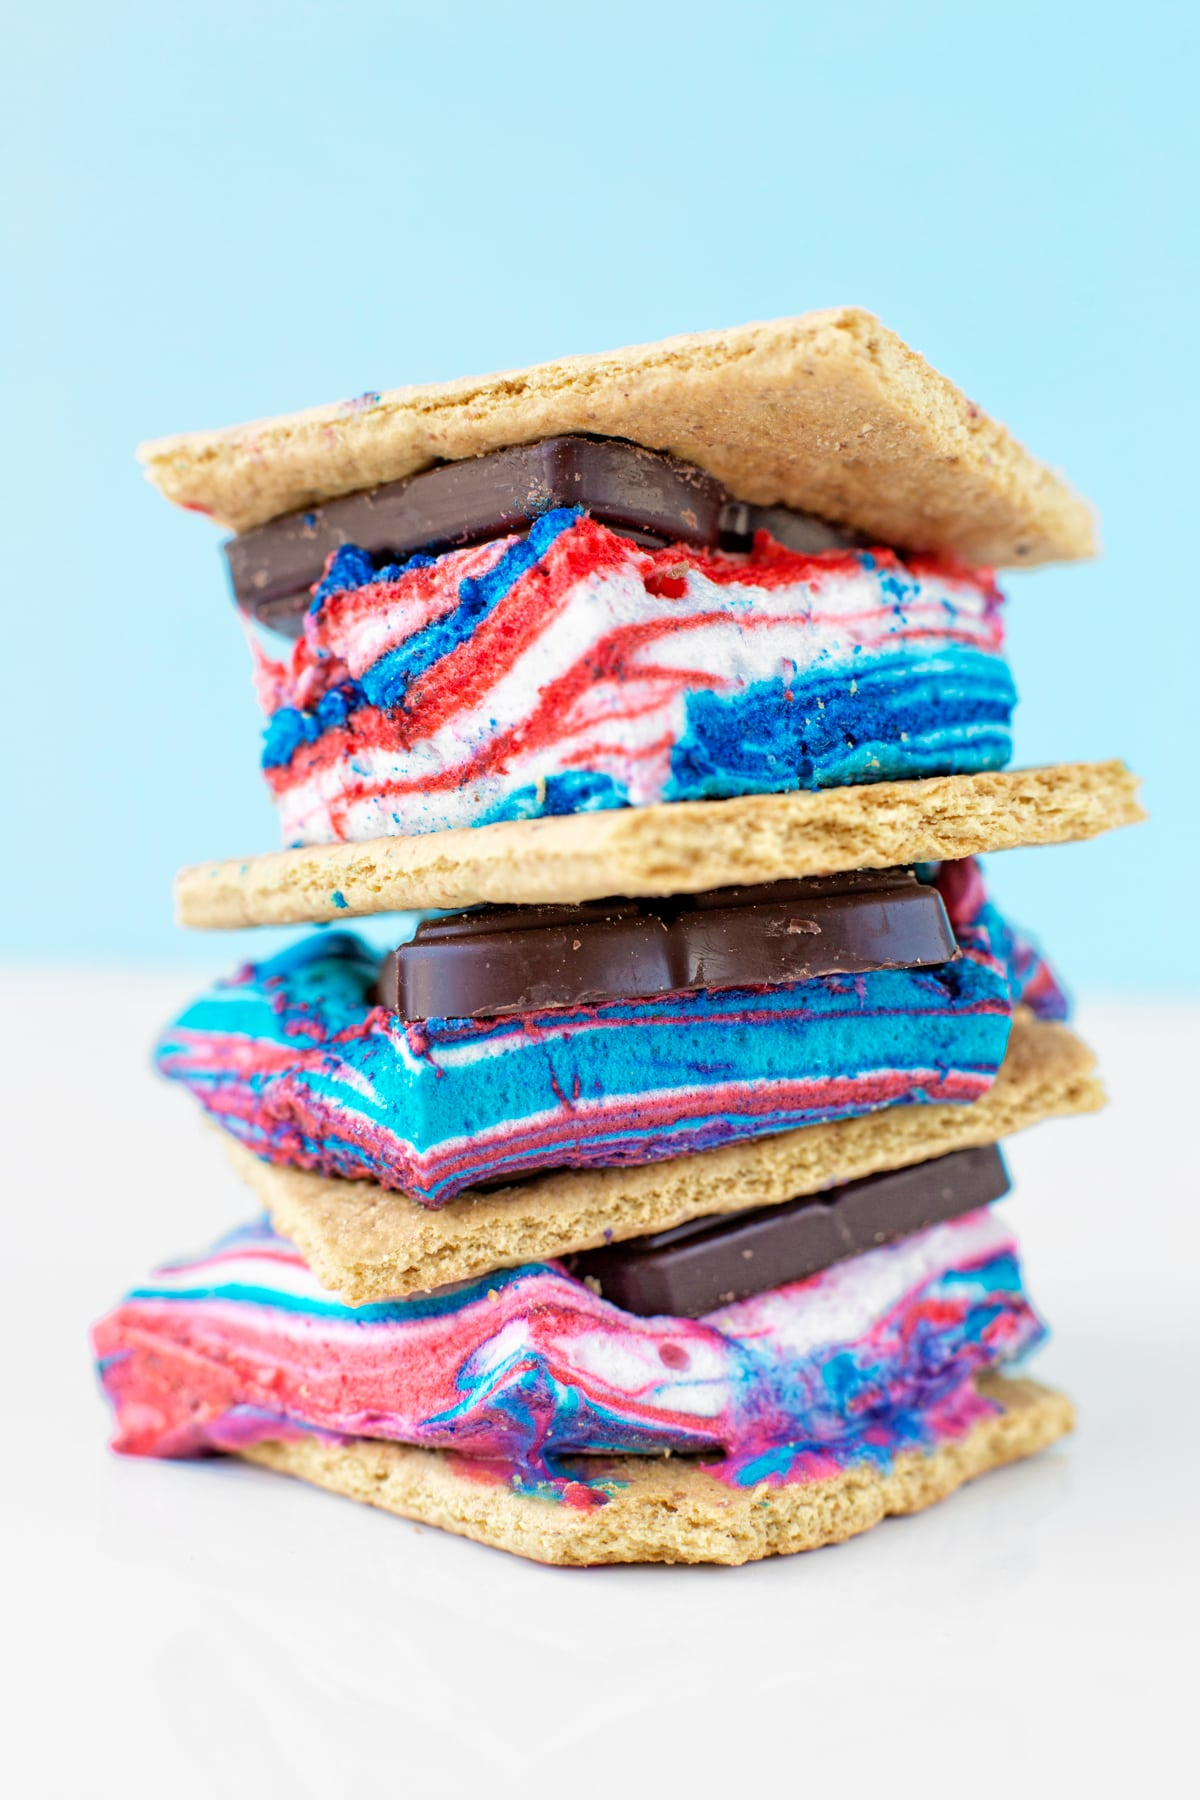 Red, White and Blue S'mores | 4th of July party ideas, 4th of July desserts and more from @cydconverse